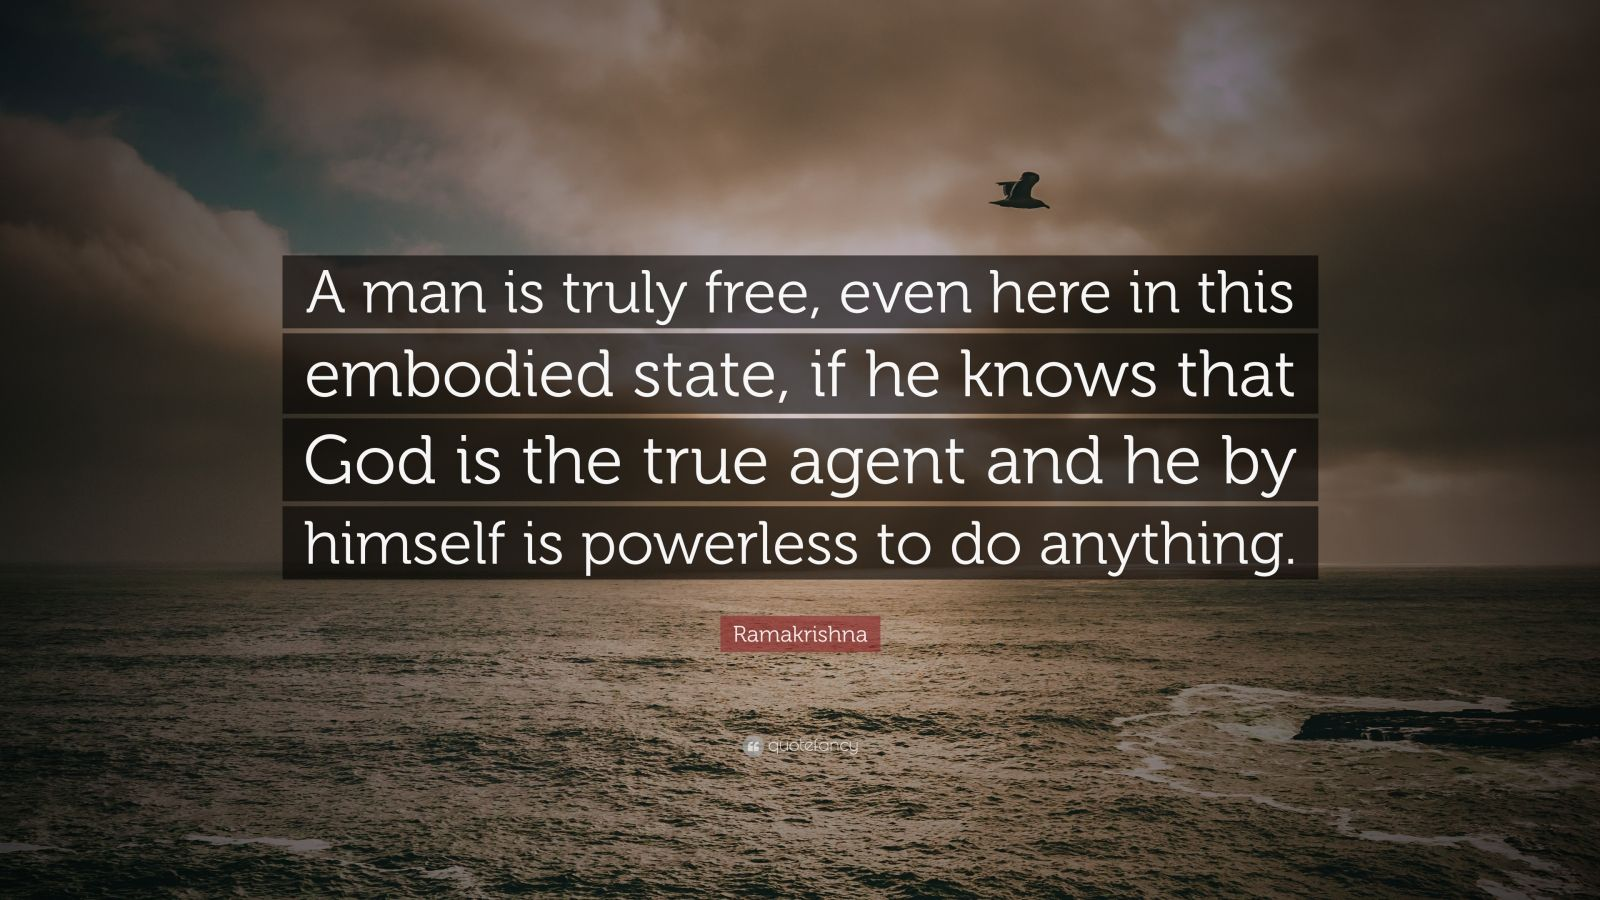 """Ramakrishna Quote: """"A man is truly free, even here in this embodied state, if he knows that God is the true agent and he by himself is powerless to do anything."""""""